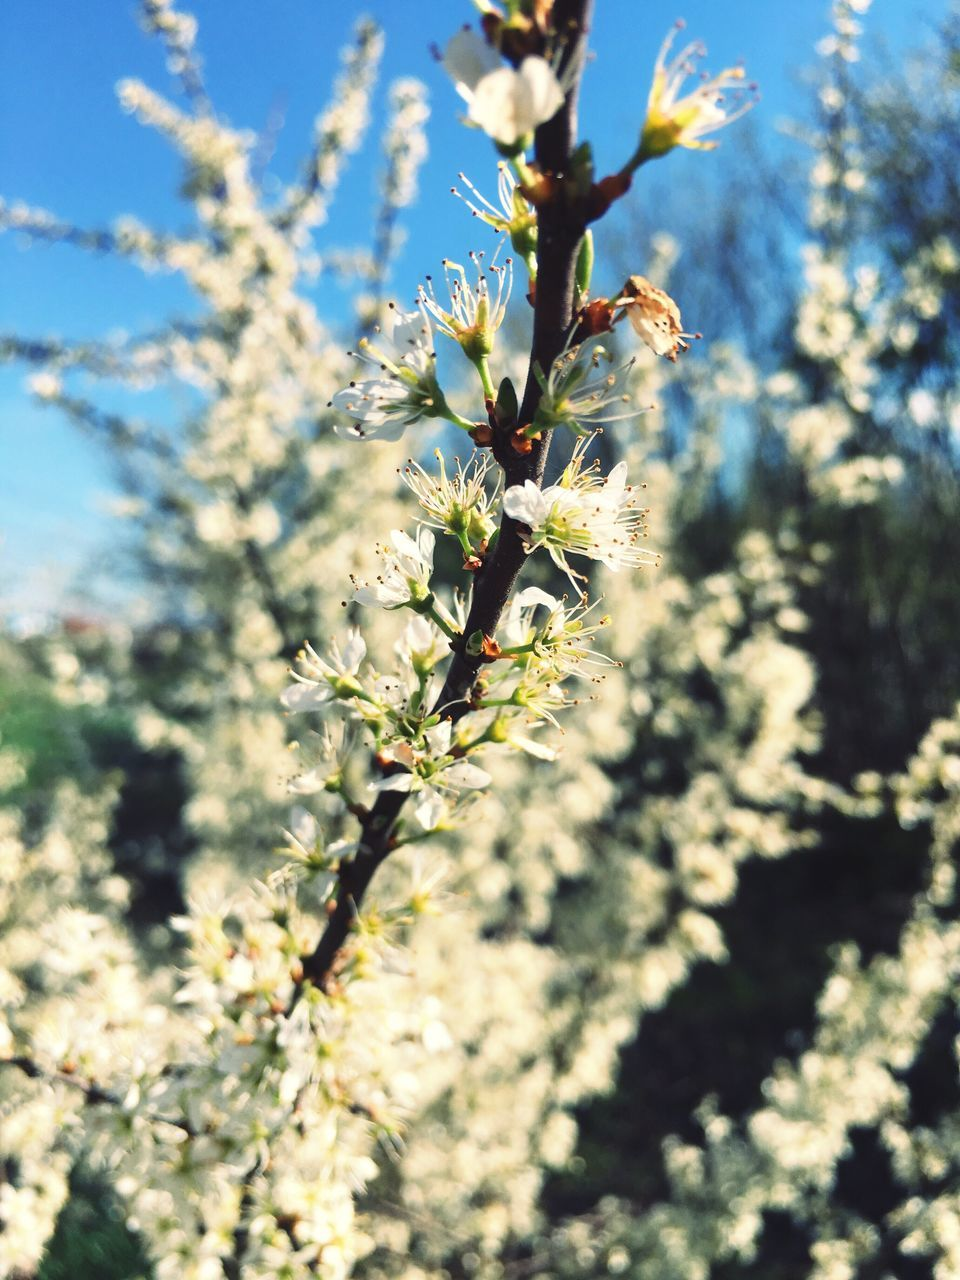 growth, nature, flower, fragility, blossom, beauty in nature, tree, bee, day, no people, selective focus, insect, sunlight, outdoors, plant, freshness, springtime, close-up, flower head, animal themes